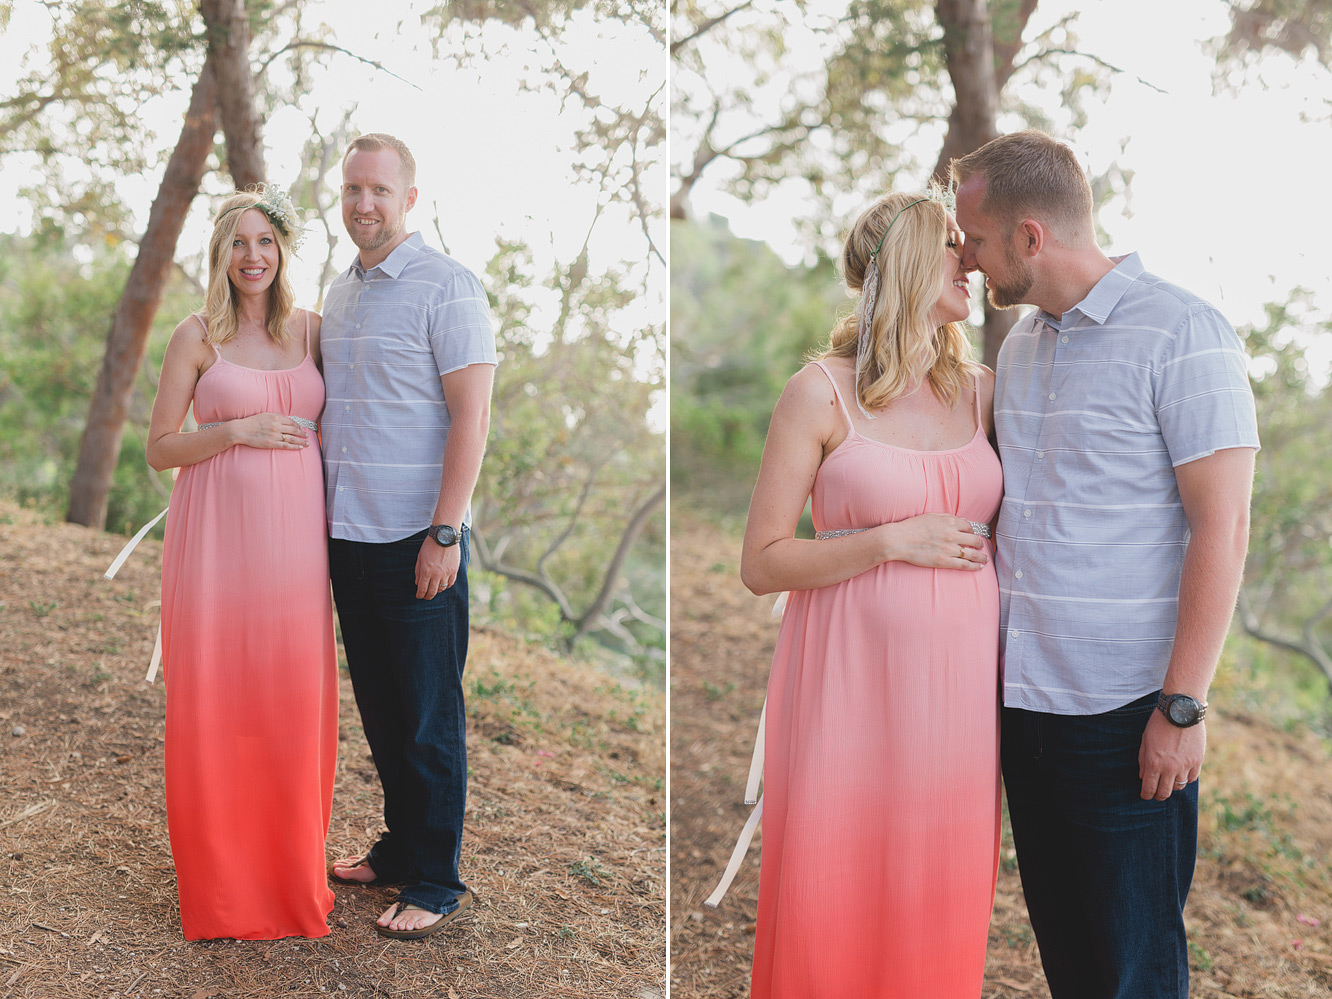 palos-verdes-maternity-photos-1